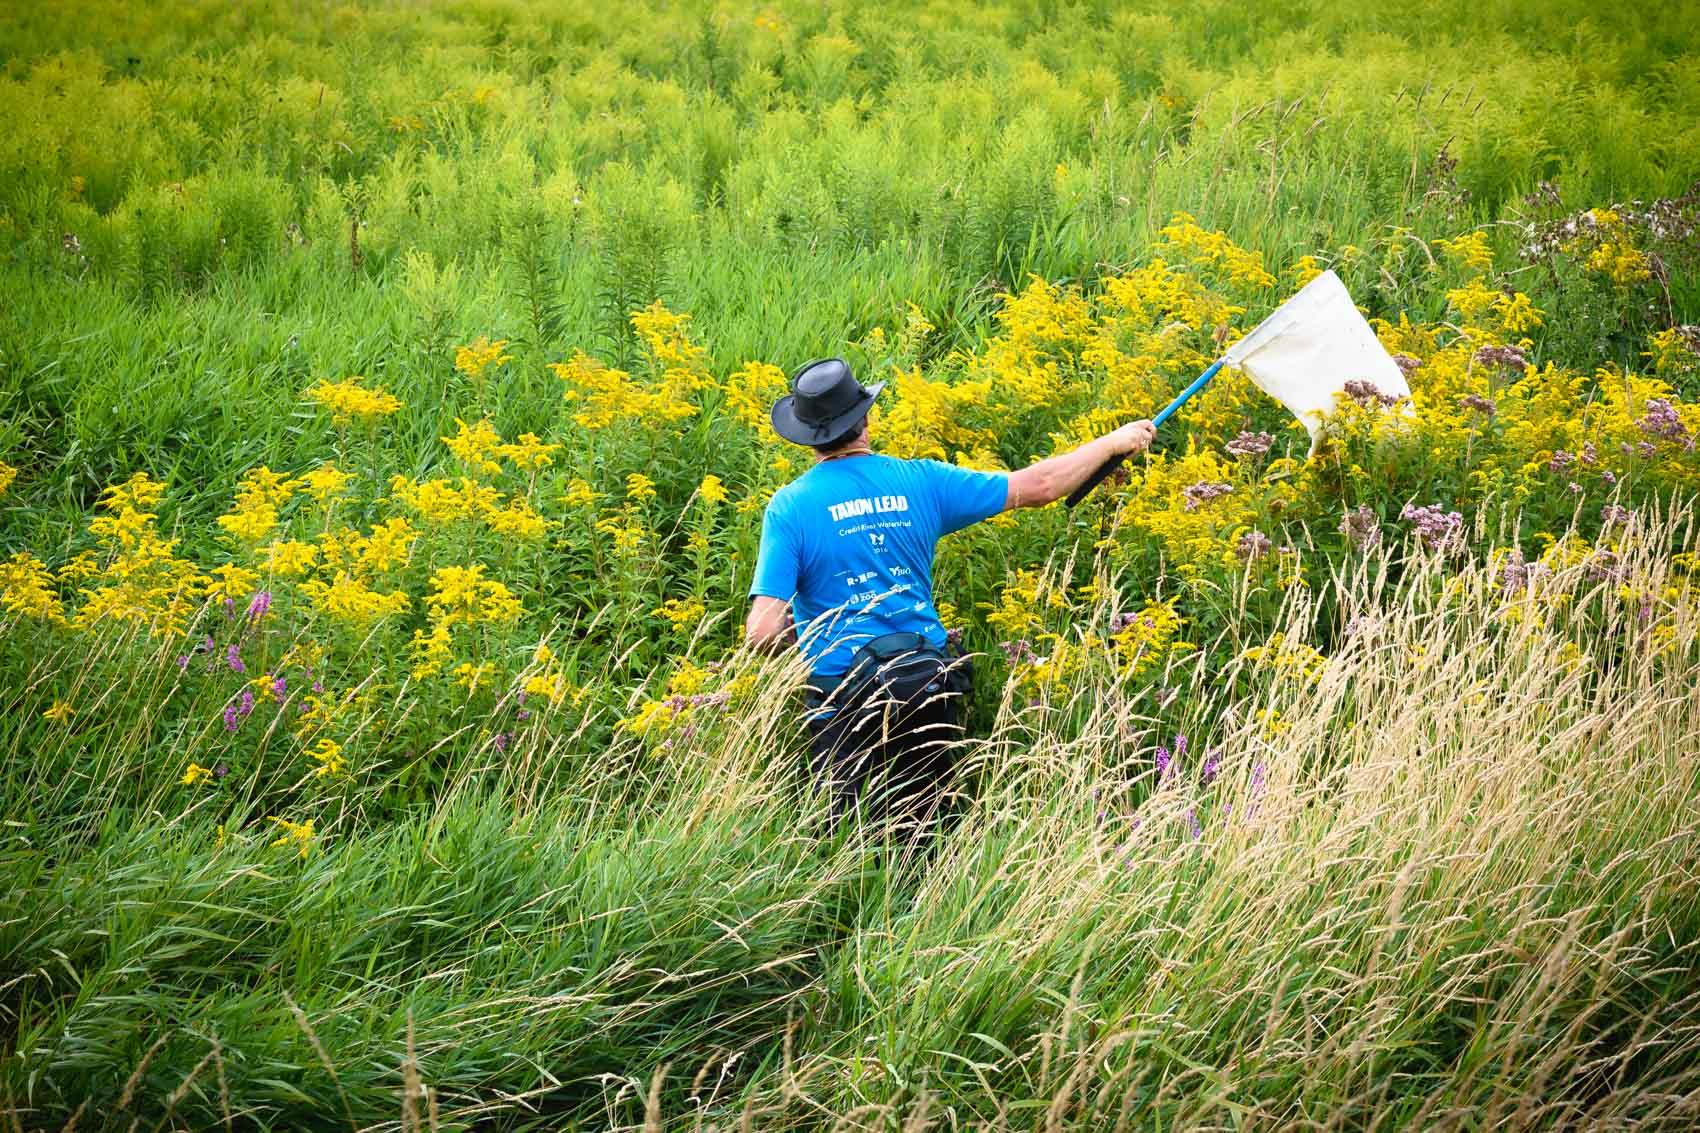 A scientist sweeps through a field with a net looking for spiders © David Coulson conservation photojournalist